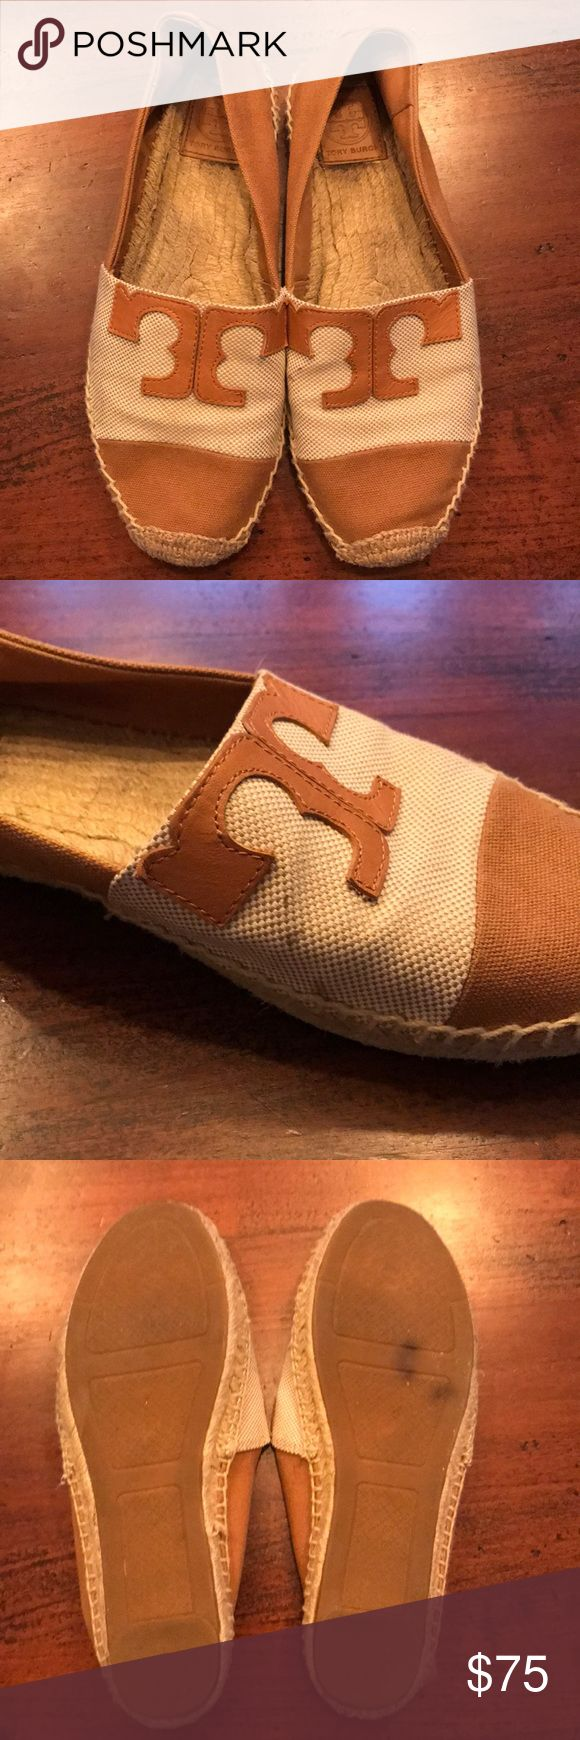 Tory Burch Espadrilles Used, but still a lot of life left! Cute, neutral espadrilles for summer! Sold out everywhere! Some scuffs but can hardly notice. All flaws shown on images. Ask questions before purchasing please. Firm on price. Tory Burch Shoes Espadrilles